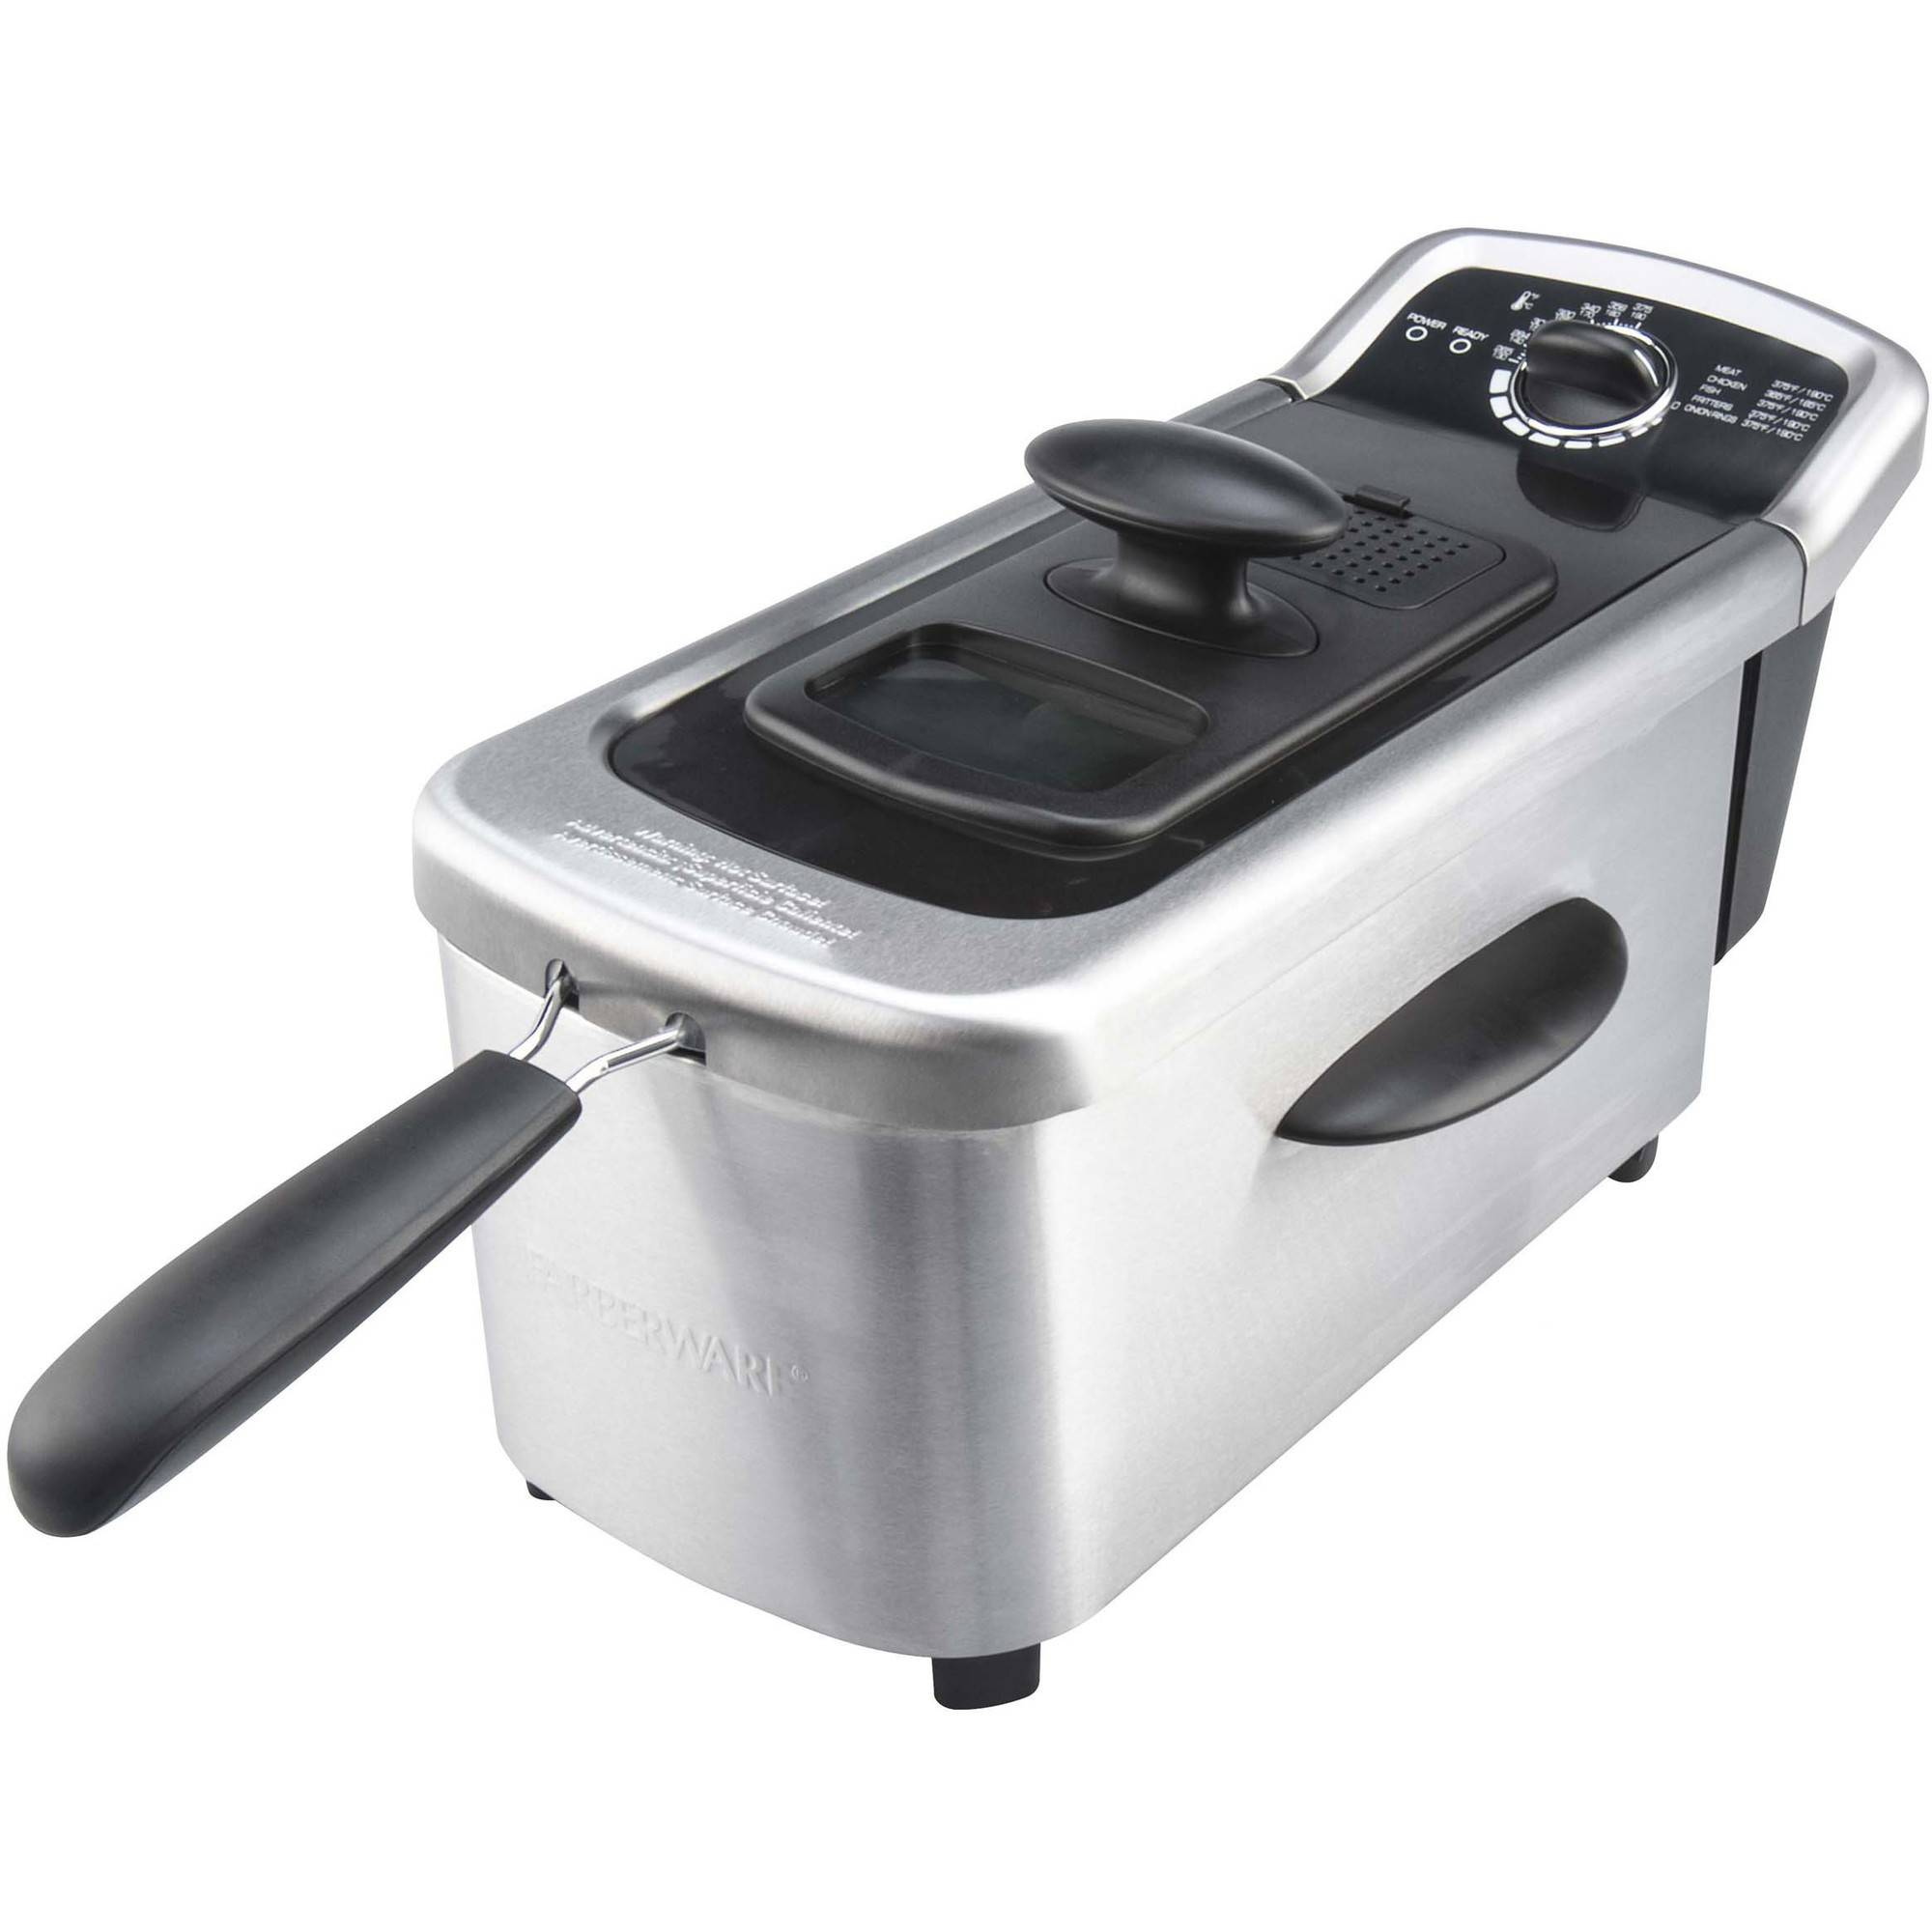 Farberware 2.5-Liter Deep Fryer